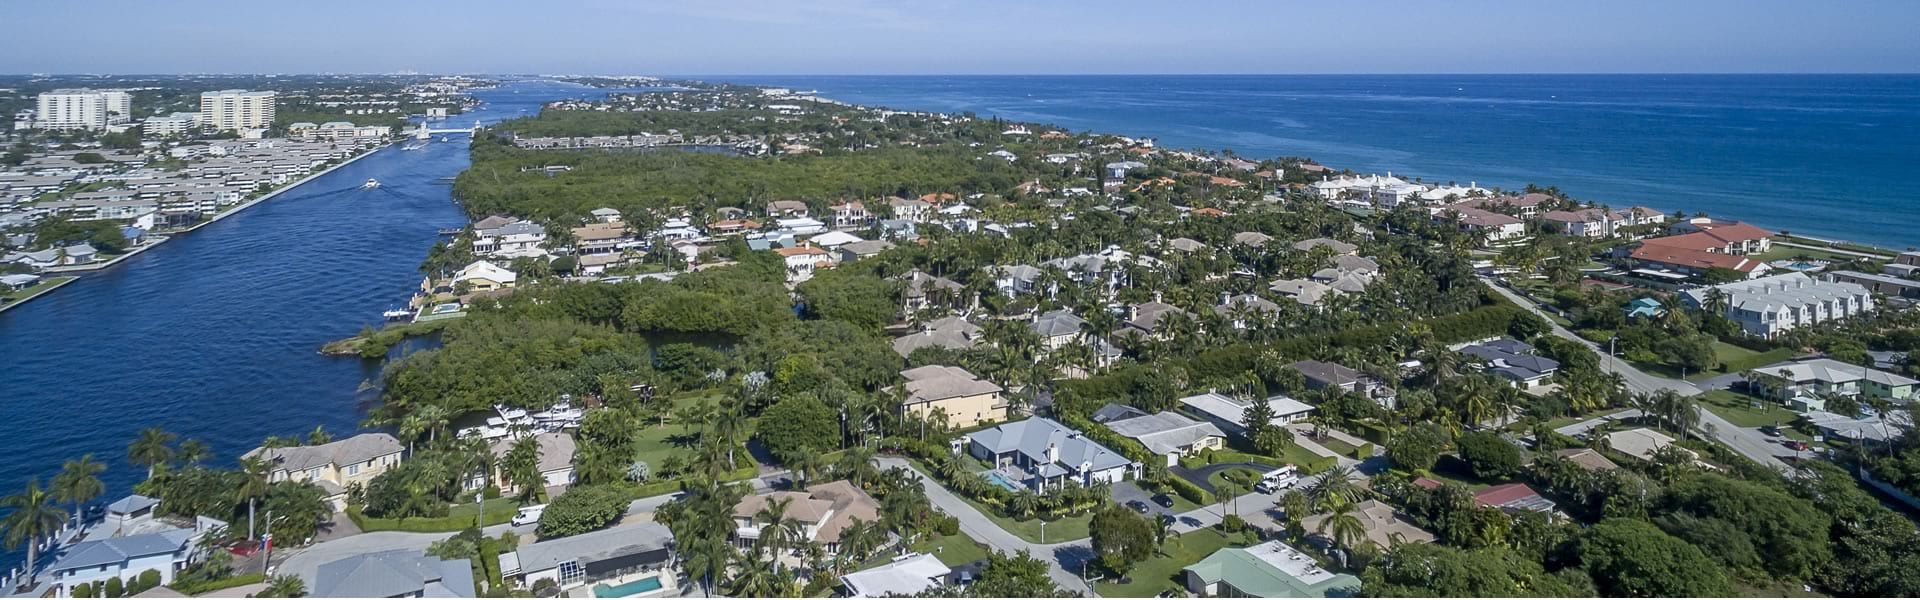 Home Watch Services Delray Beach